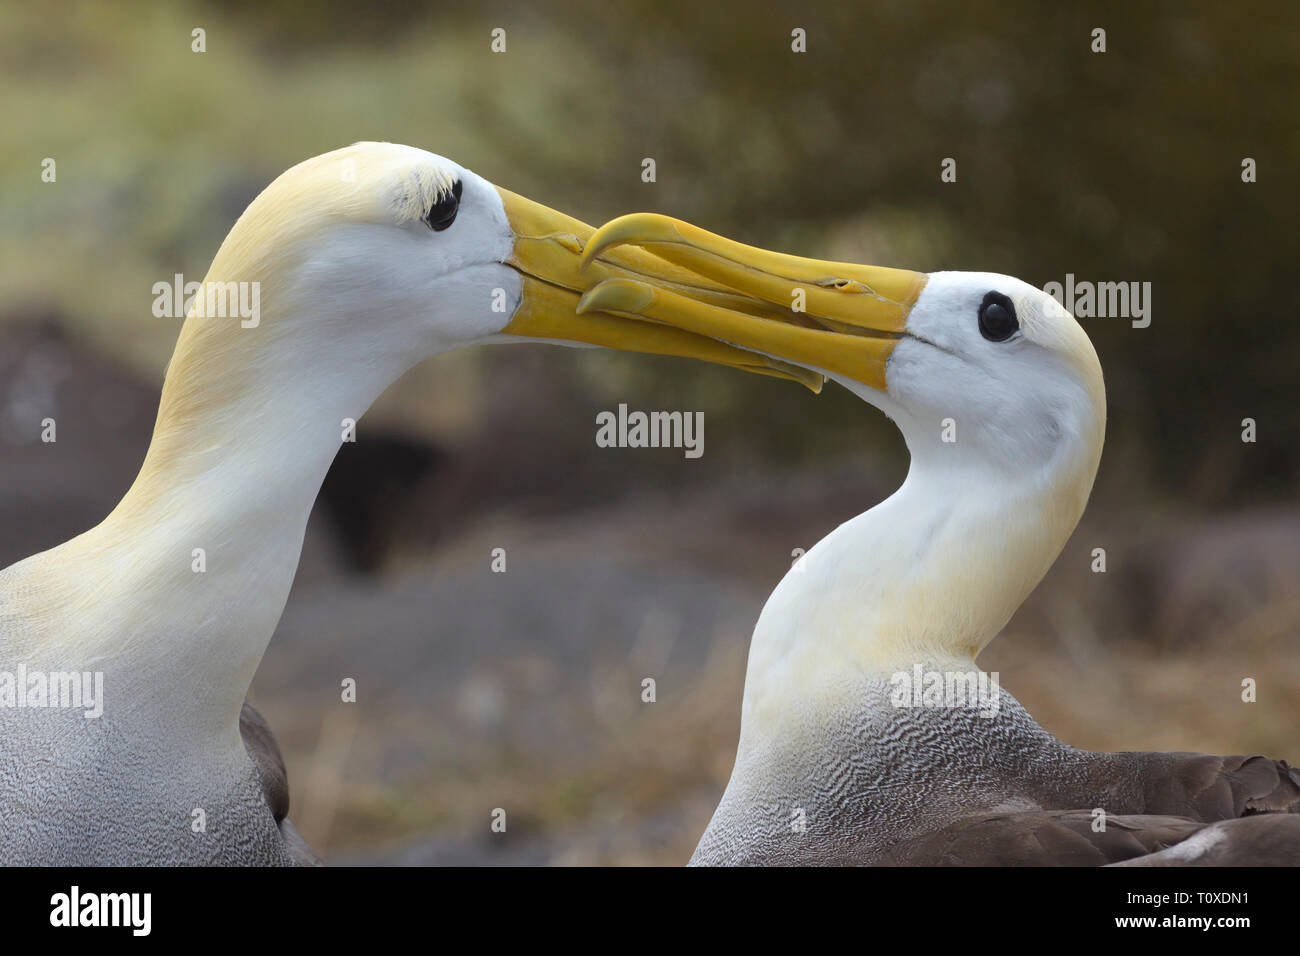 A pair of Waved Albatrosses (Phoebastria irrorate) courting - Stock Image